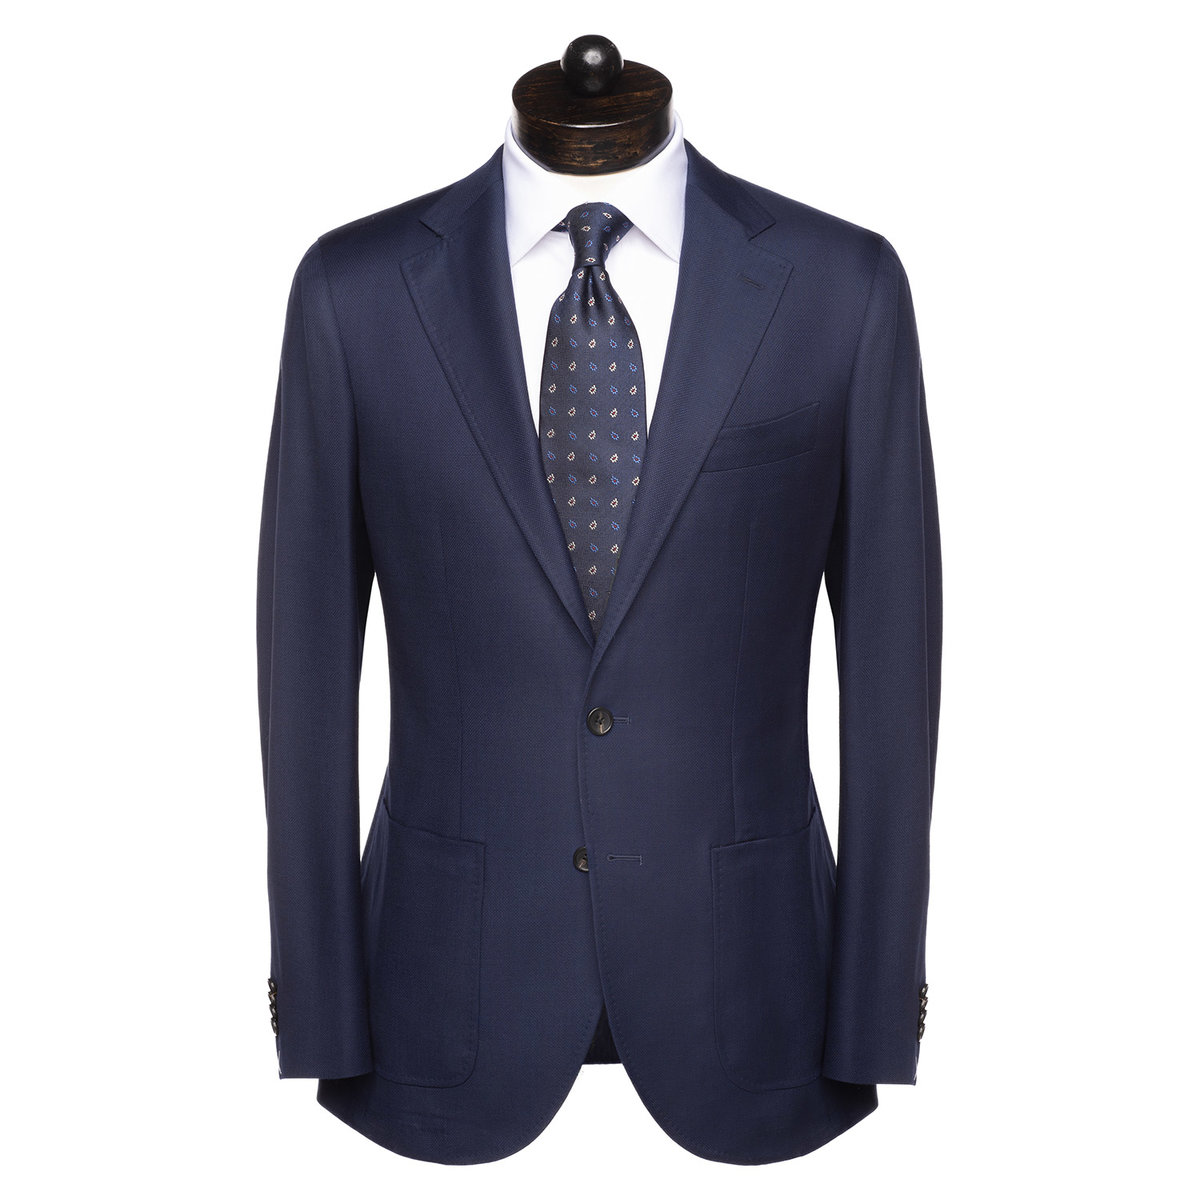 10005-593-3-1-1-spiermackay_suits_patch_pockets-1.jpg